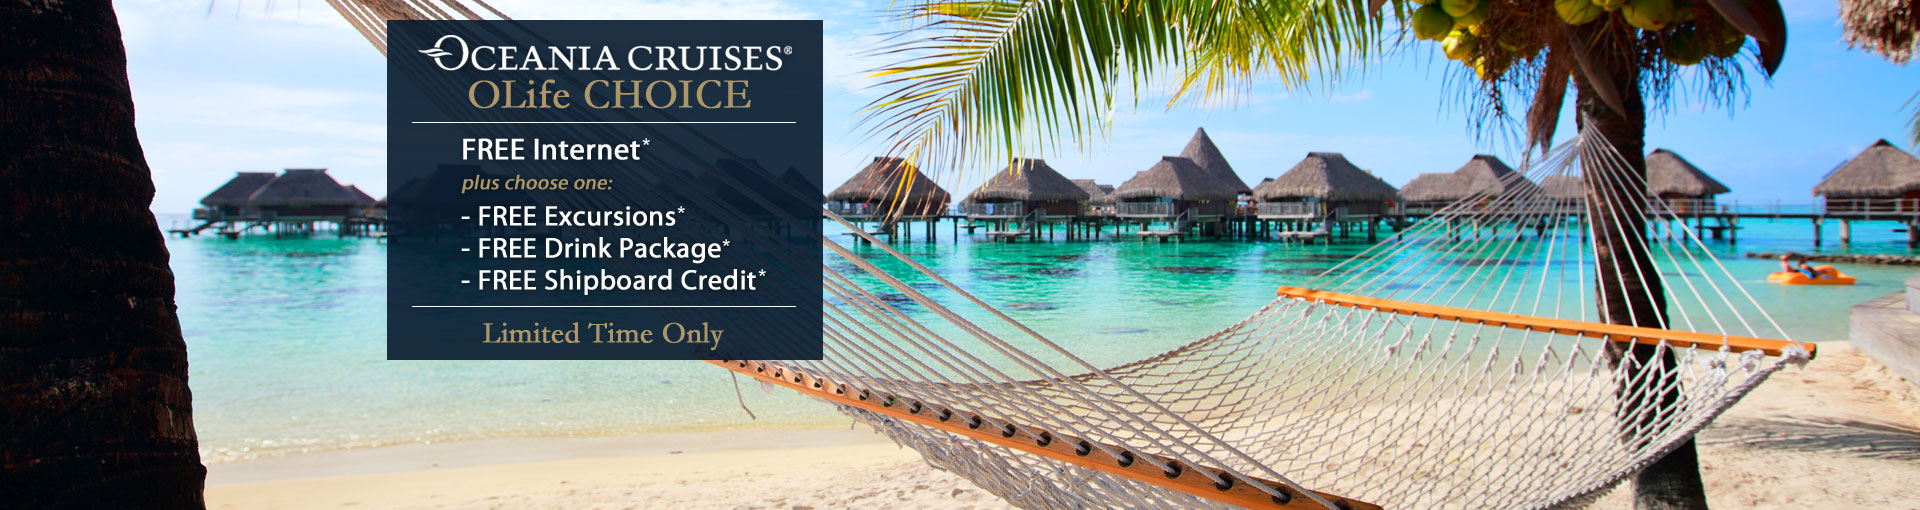 Oceania Cruises - OLife Choice Sale